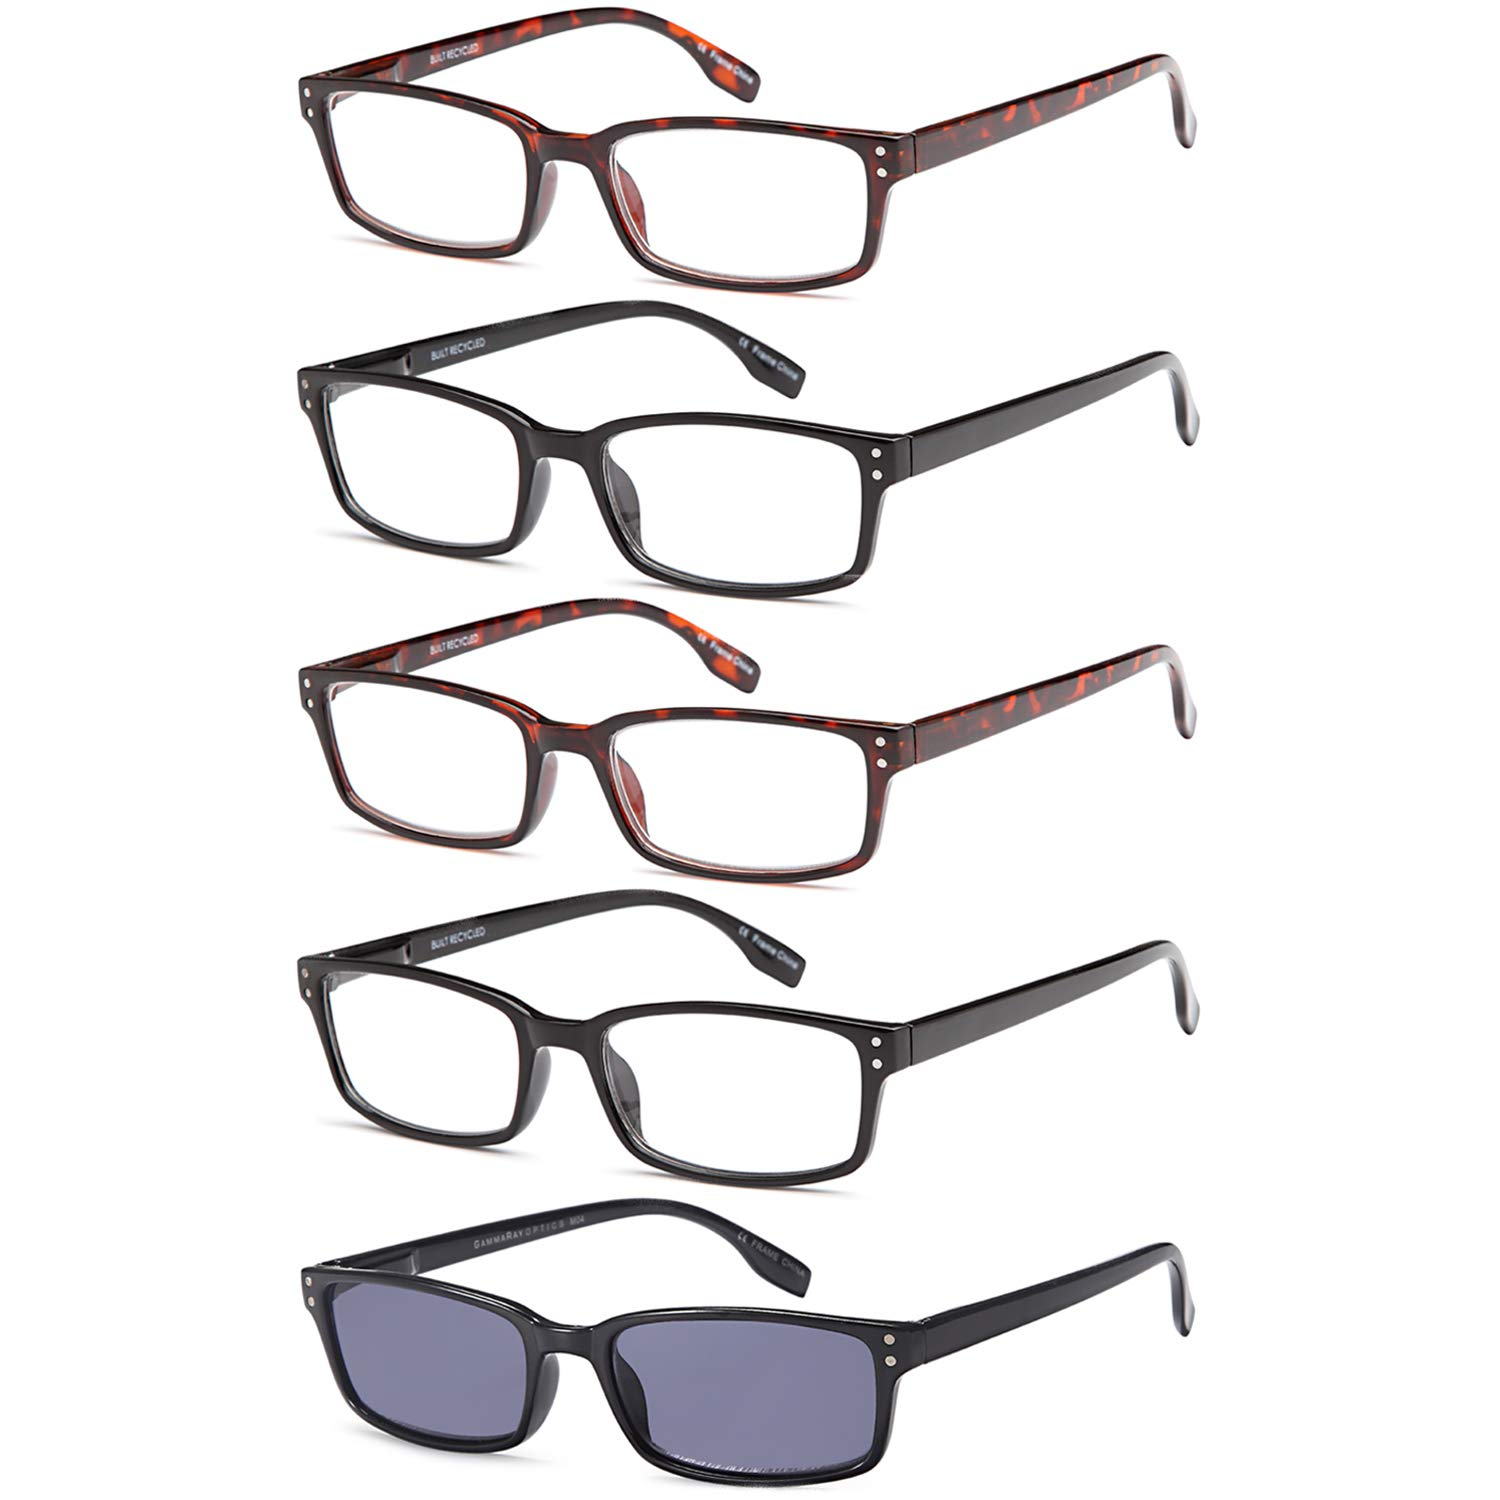 a73eb1fceb GAMMA RAY Readers 5 Pair Readers Quality Spring Hinge Reading Glasses -  Choose Your Magnification product